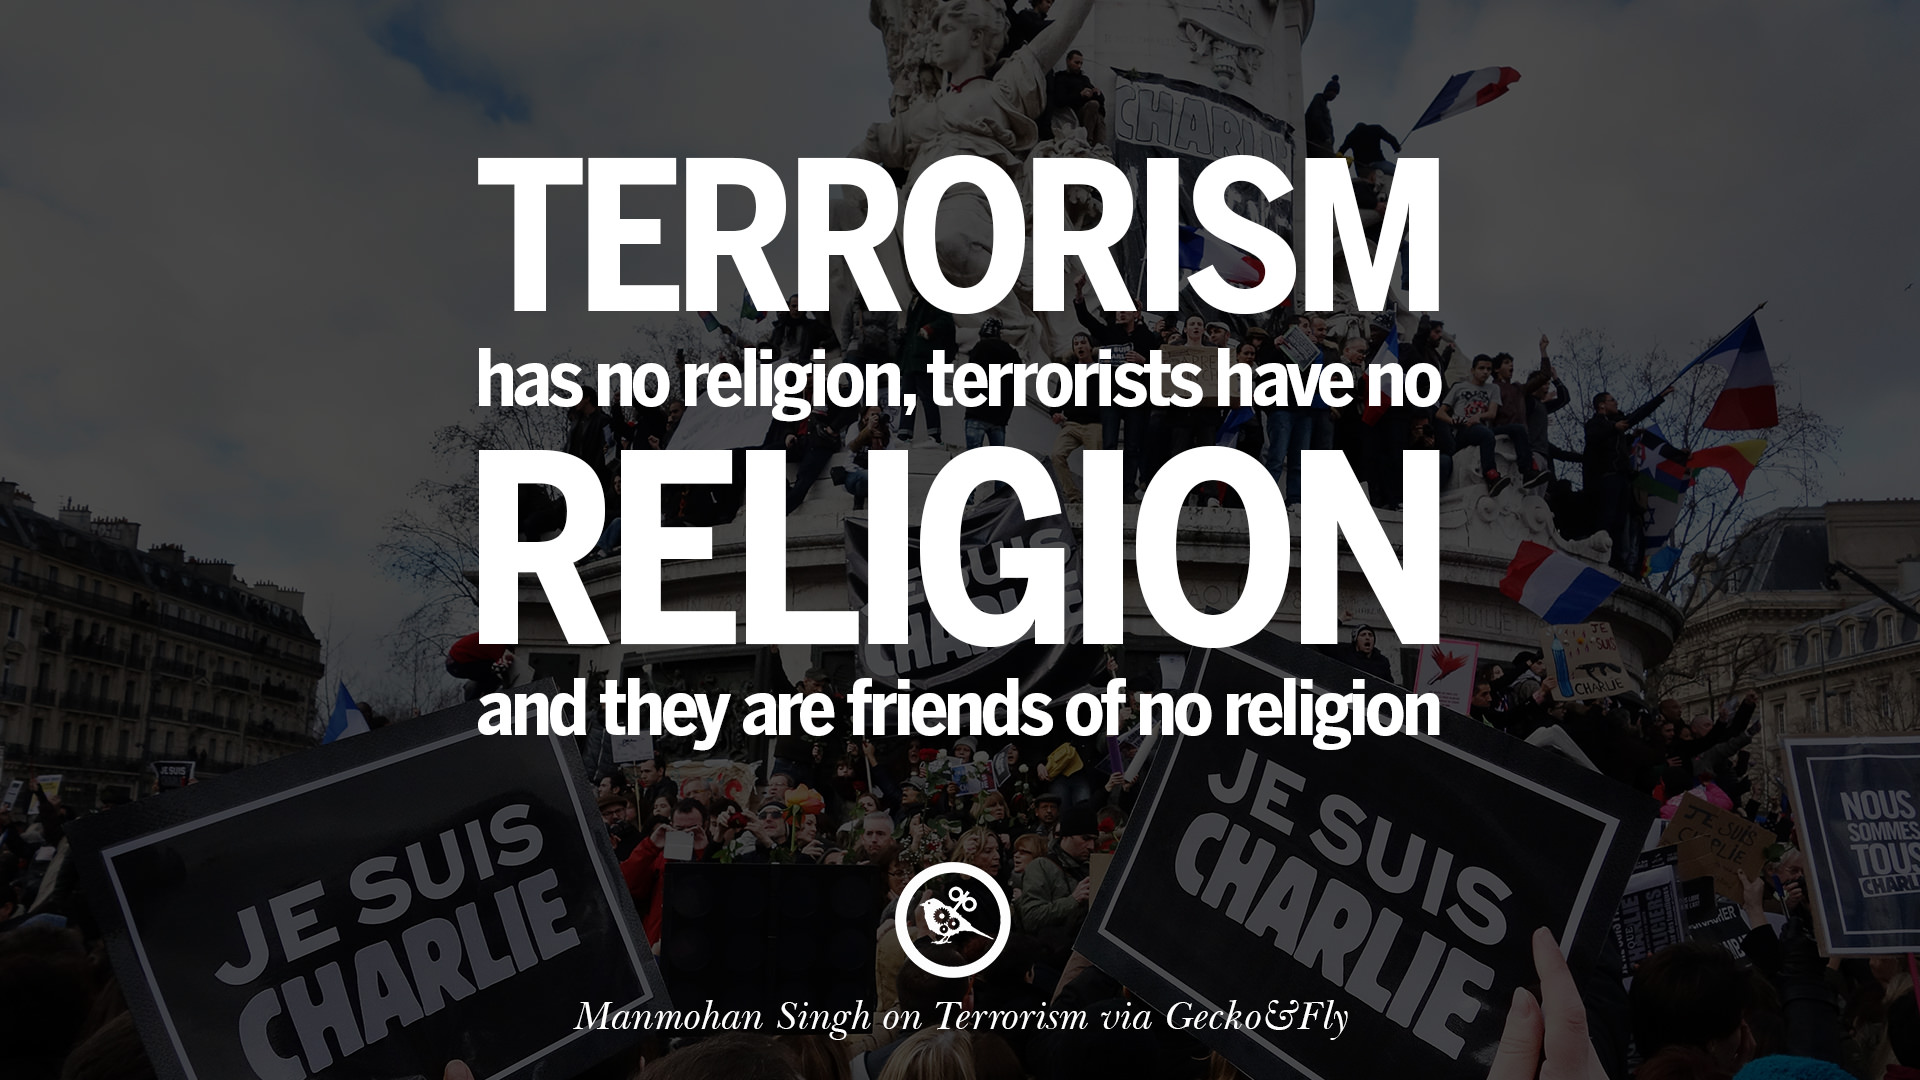 essay on islam and terrorism inspiring quotes against terrorist  21 inspiring quotes against terrorist and religious terrorism terrorism has no religion terrorists have no religion